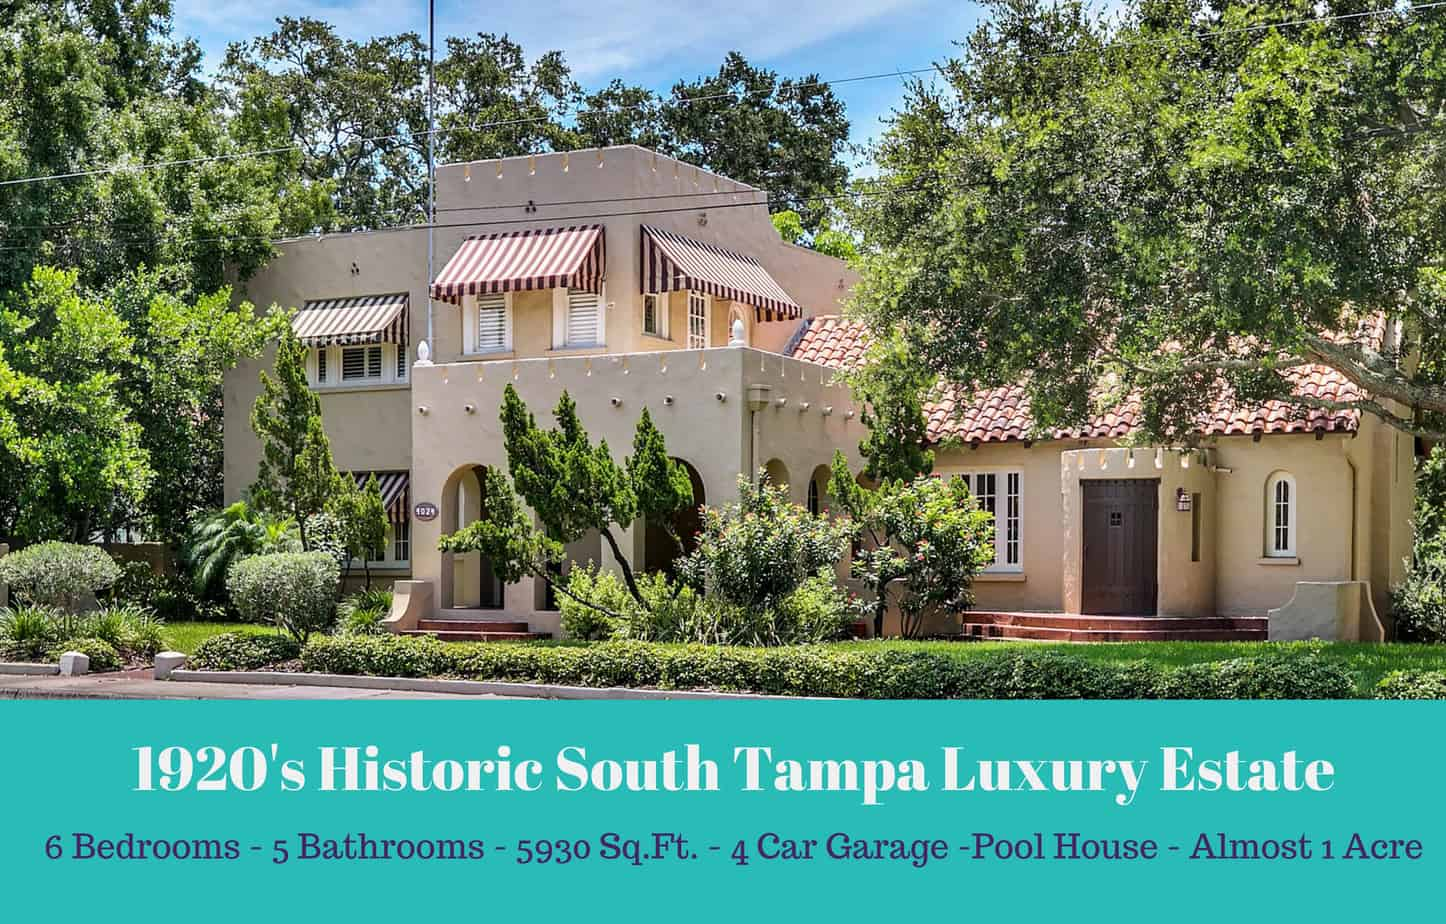 Front of Home at 4024 W Bay To Bay Tampa FL 33629 with text that says 1920s Historic South Tampa Luxury Estate with 6 bedrooms 5 bathrooms, 5930 Sq.ft. 4 Car Garage and Almost an Avre